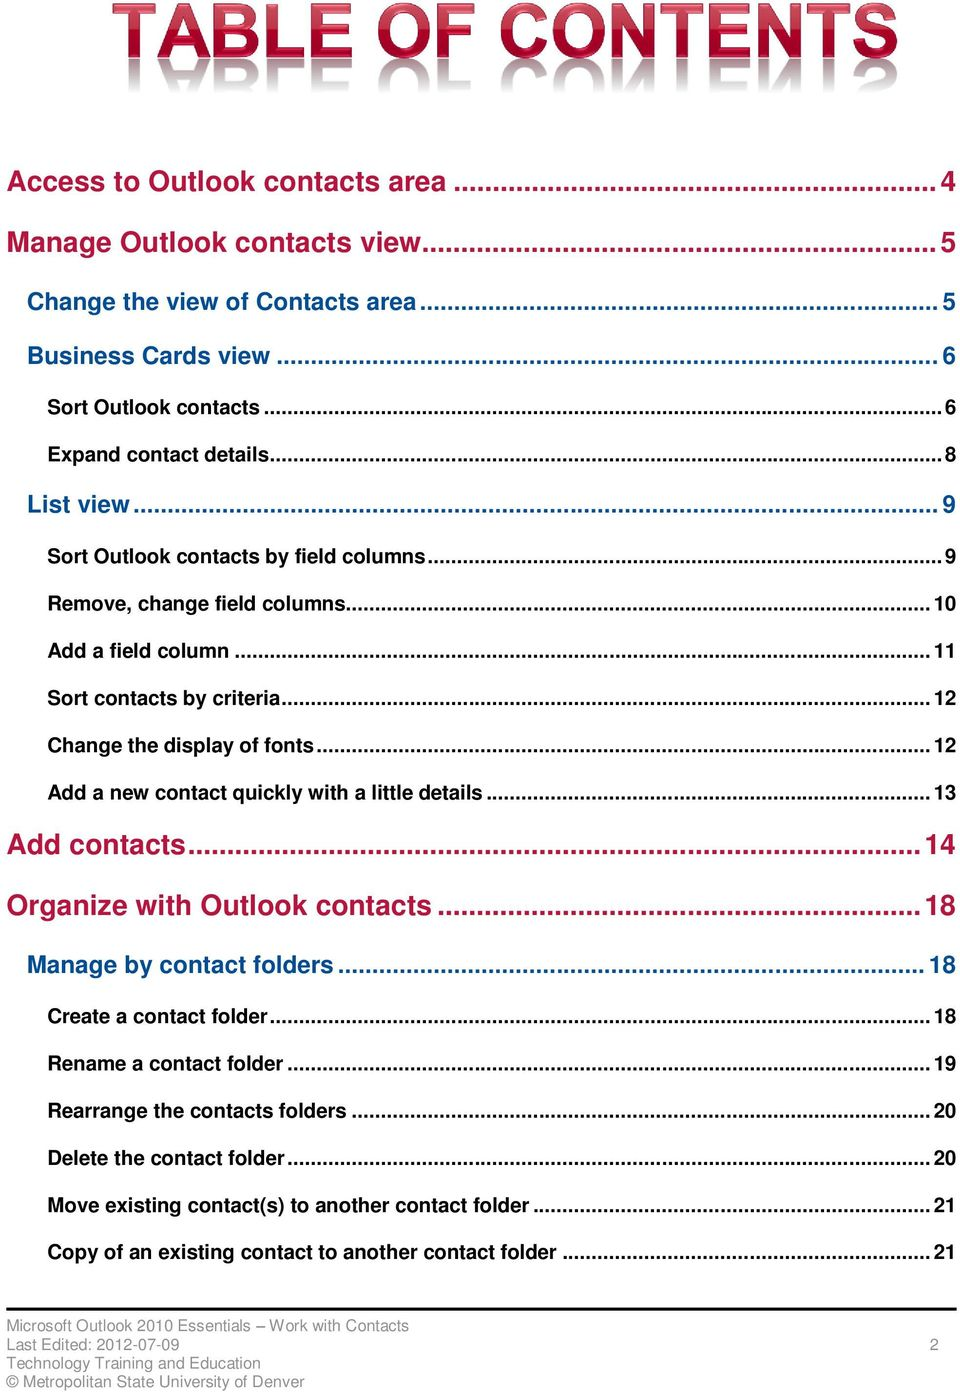 .. 12 Add a new contact quickly with a little details... 13 Add contacts... 14 Organize with Outlook contacts... 18 Manage by contact folders... 18 Create a contact folder.